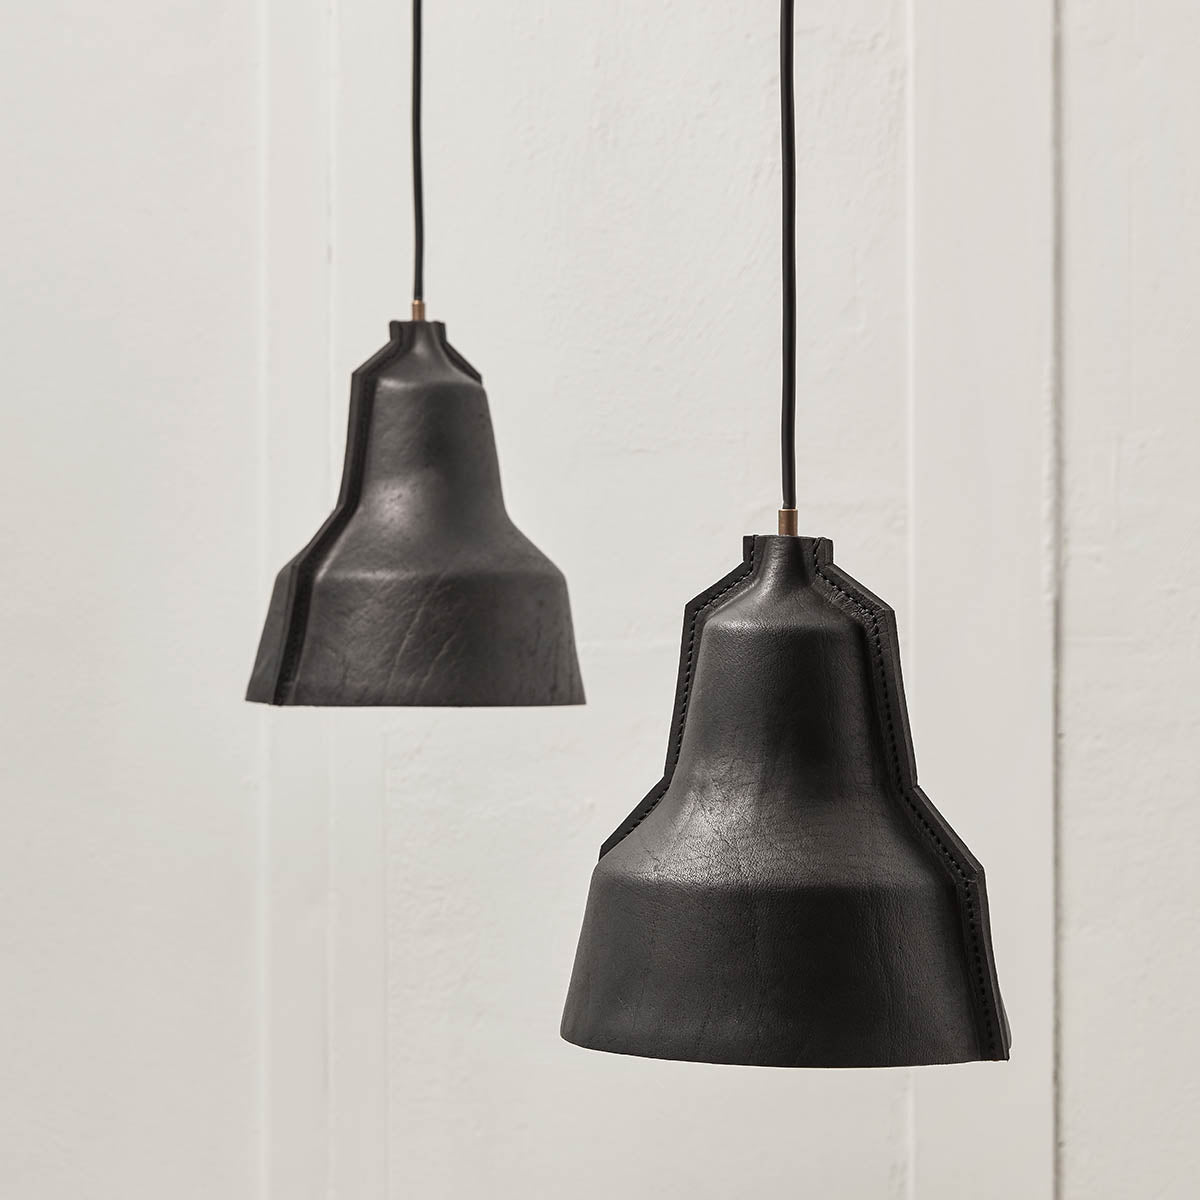 Hand Stitched Leather Lamp Shade Lloyd Lighting Design